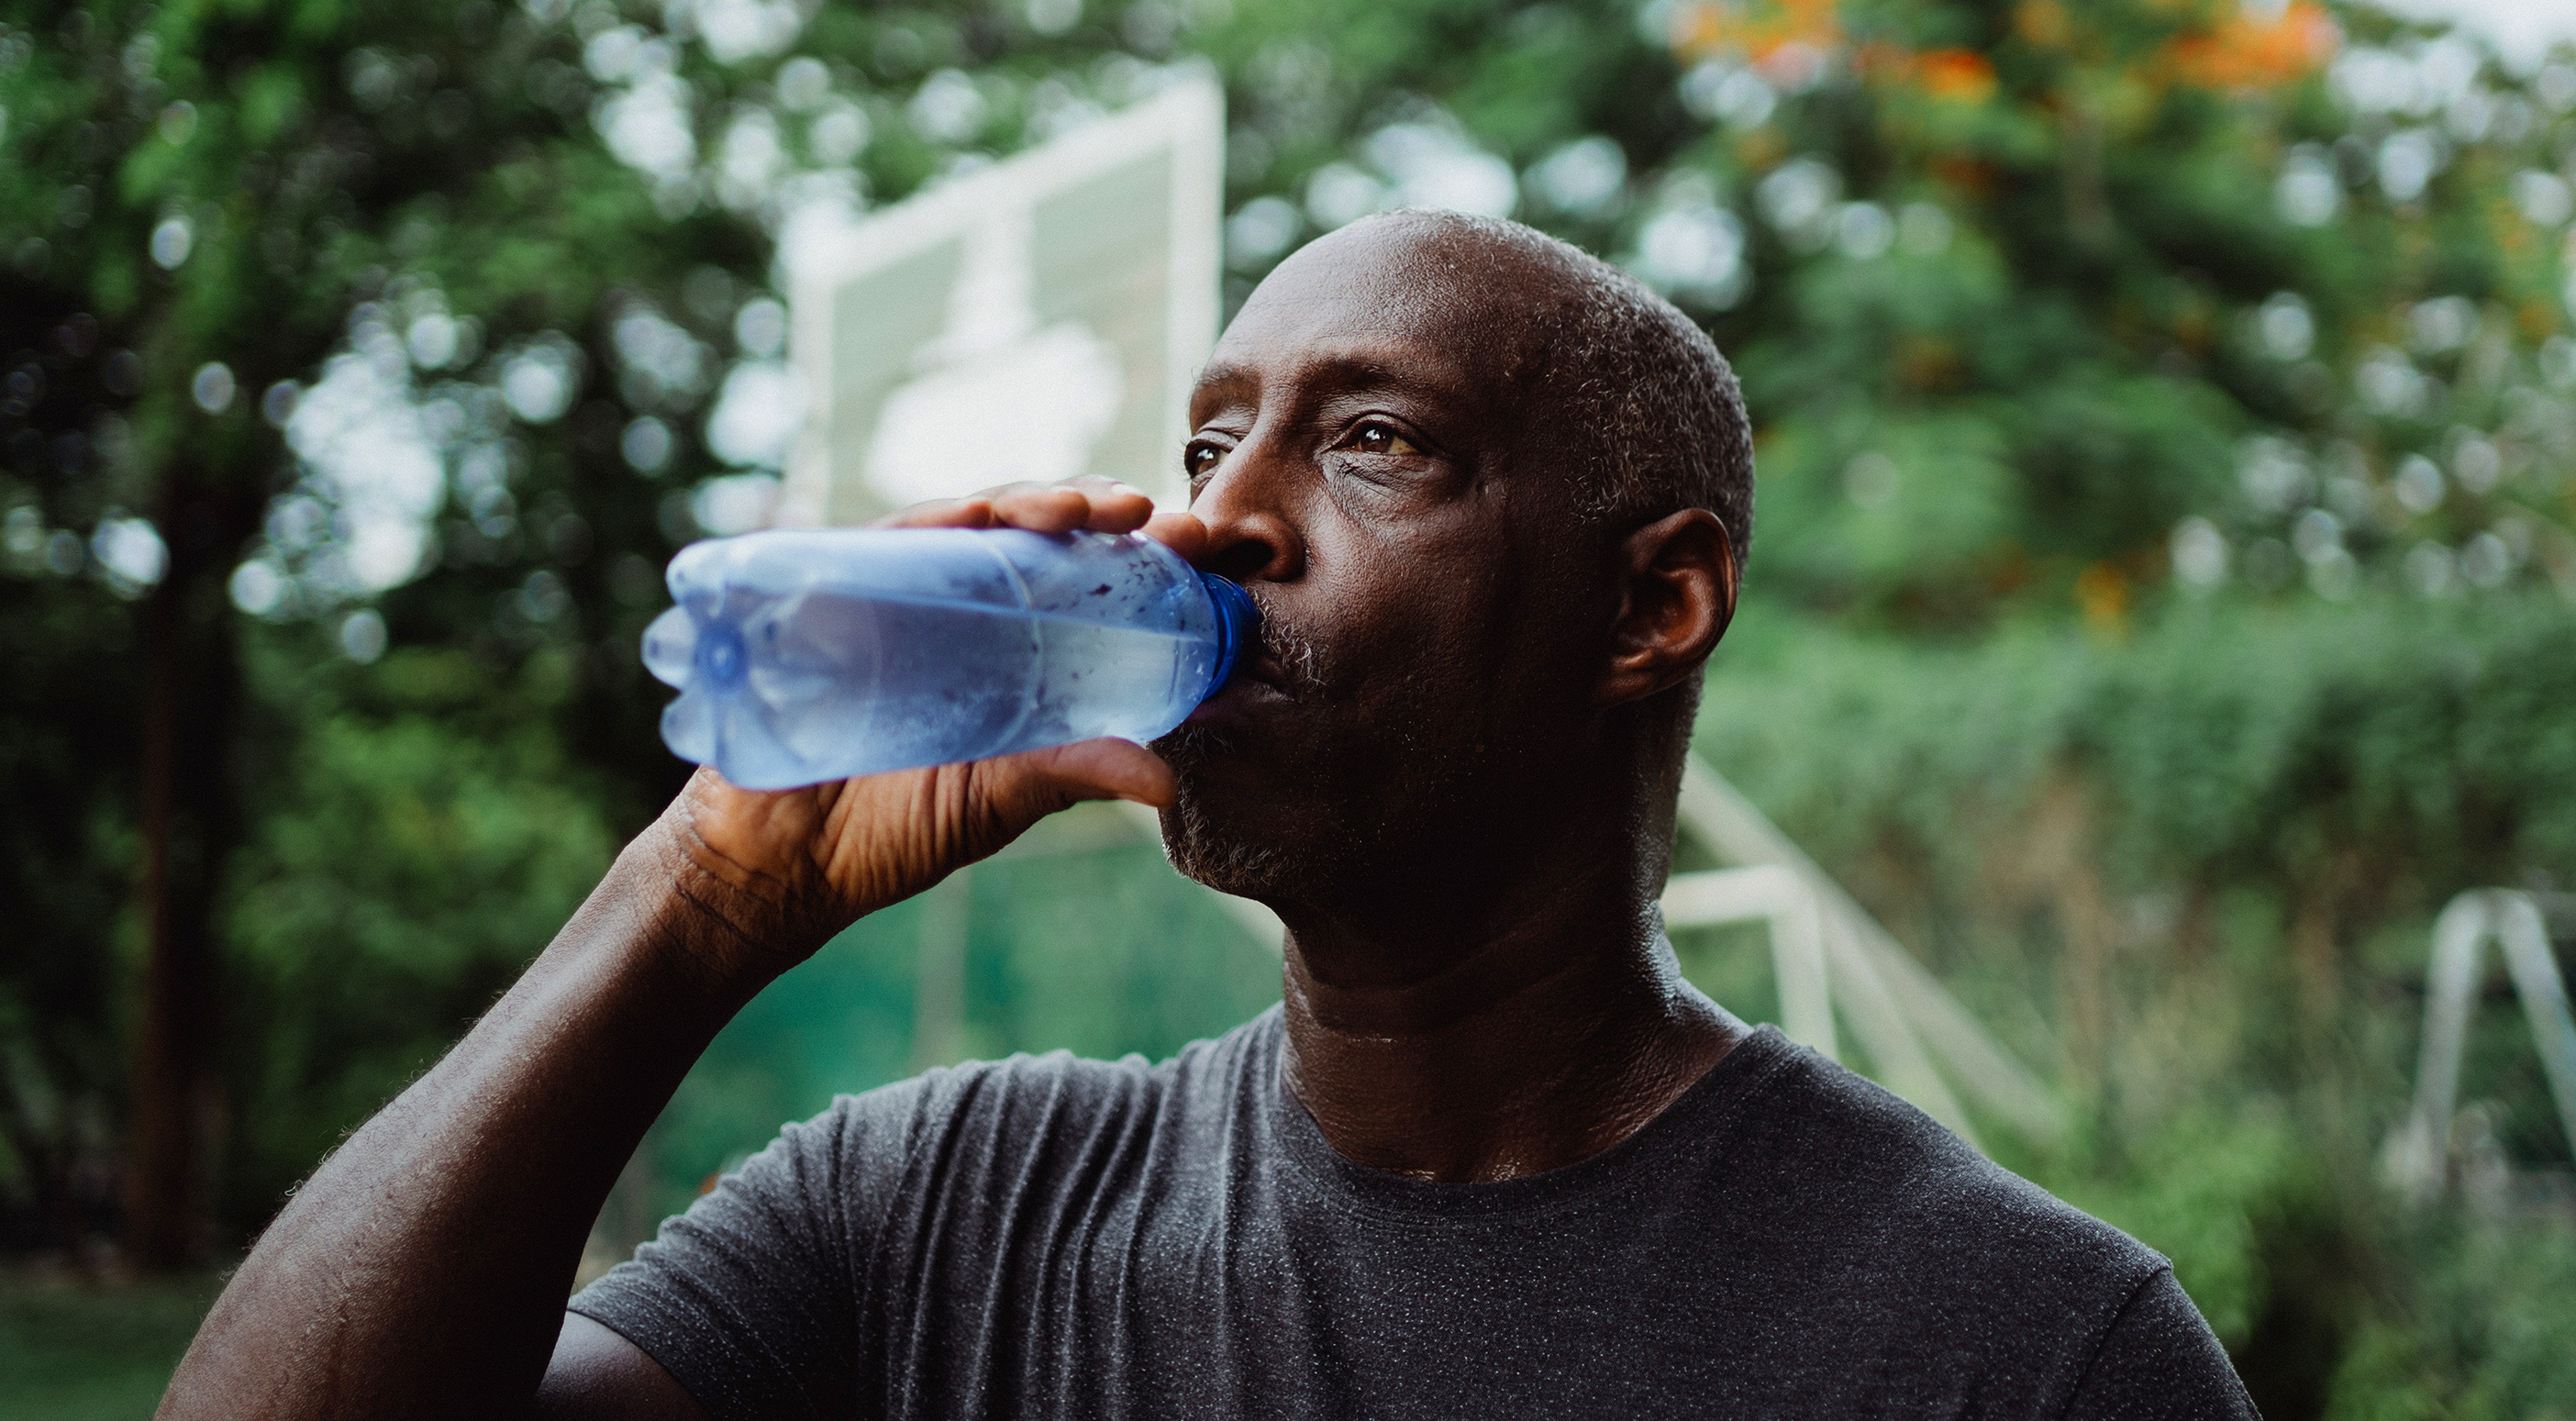 Middle aged man drinking water from a bottle after workout